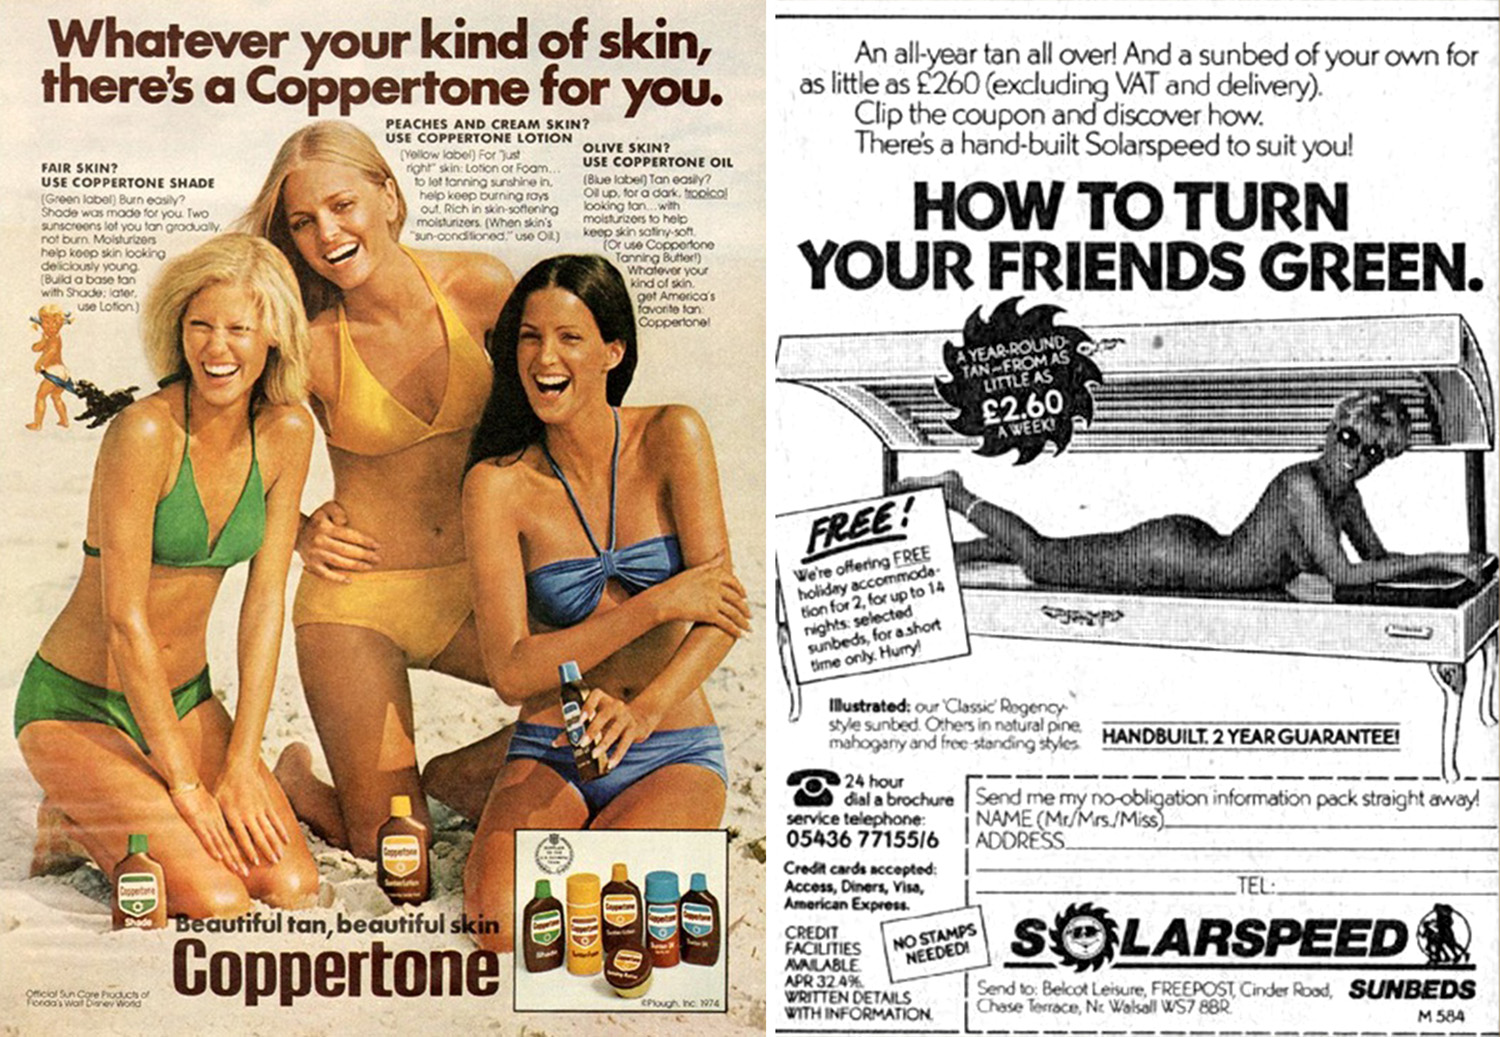 1976 coppertone and tanning bed advert